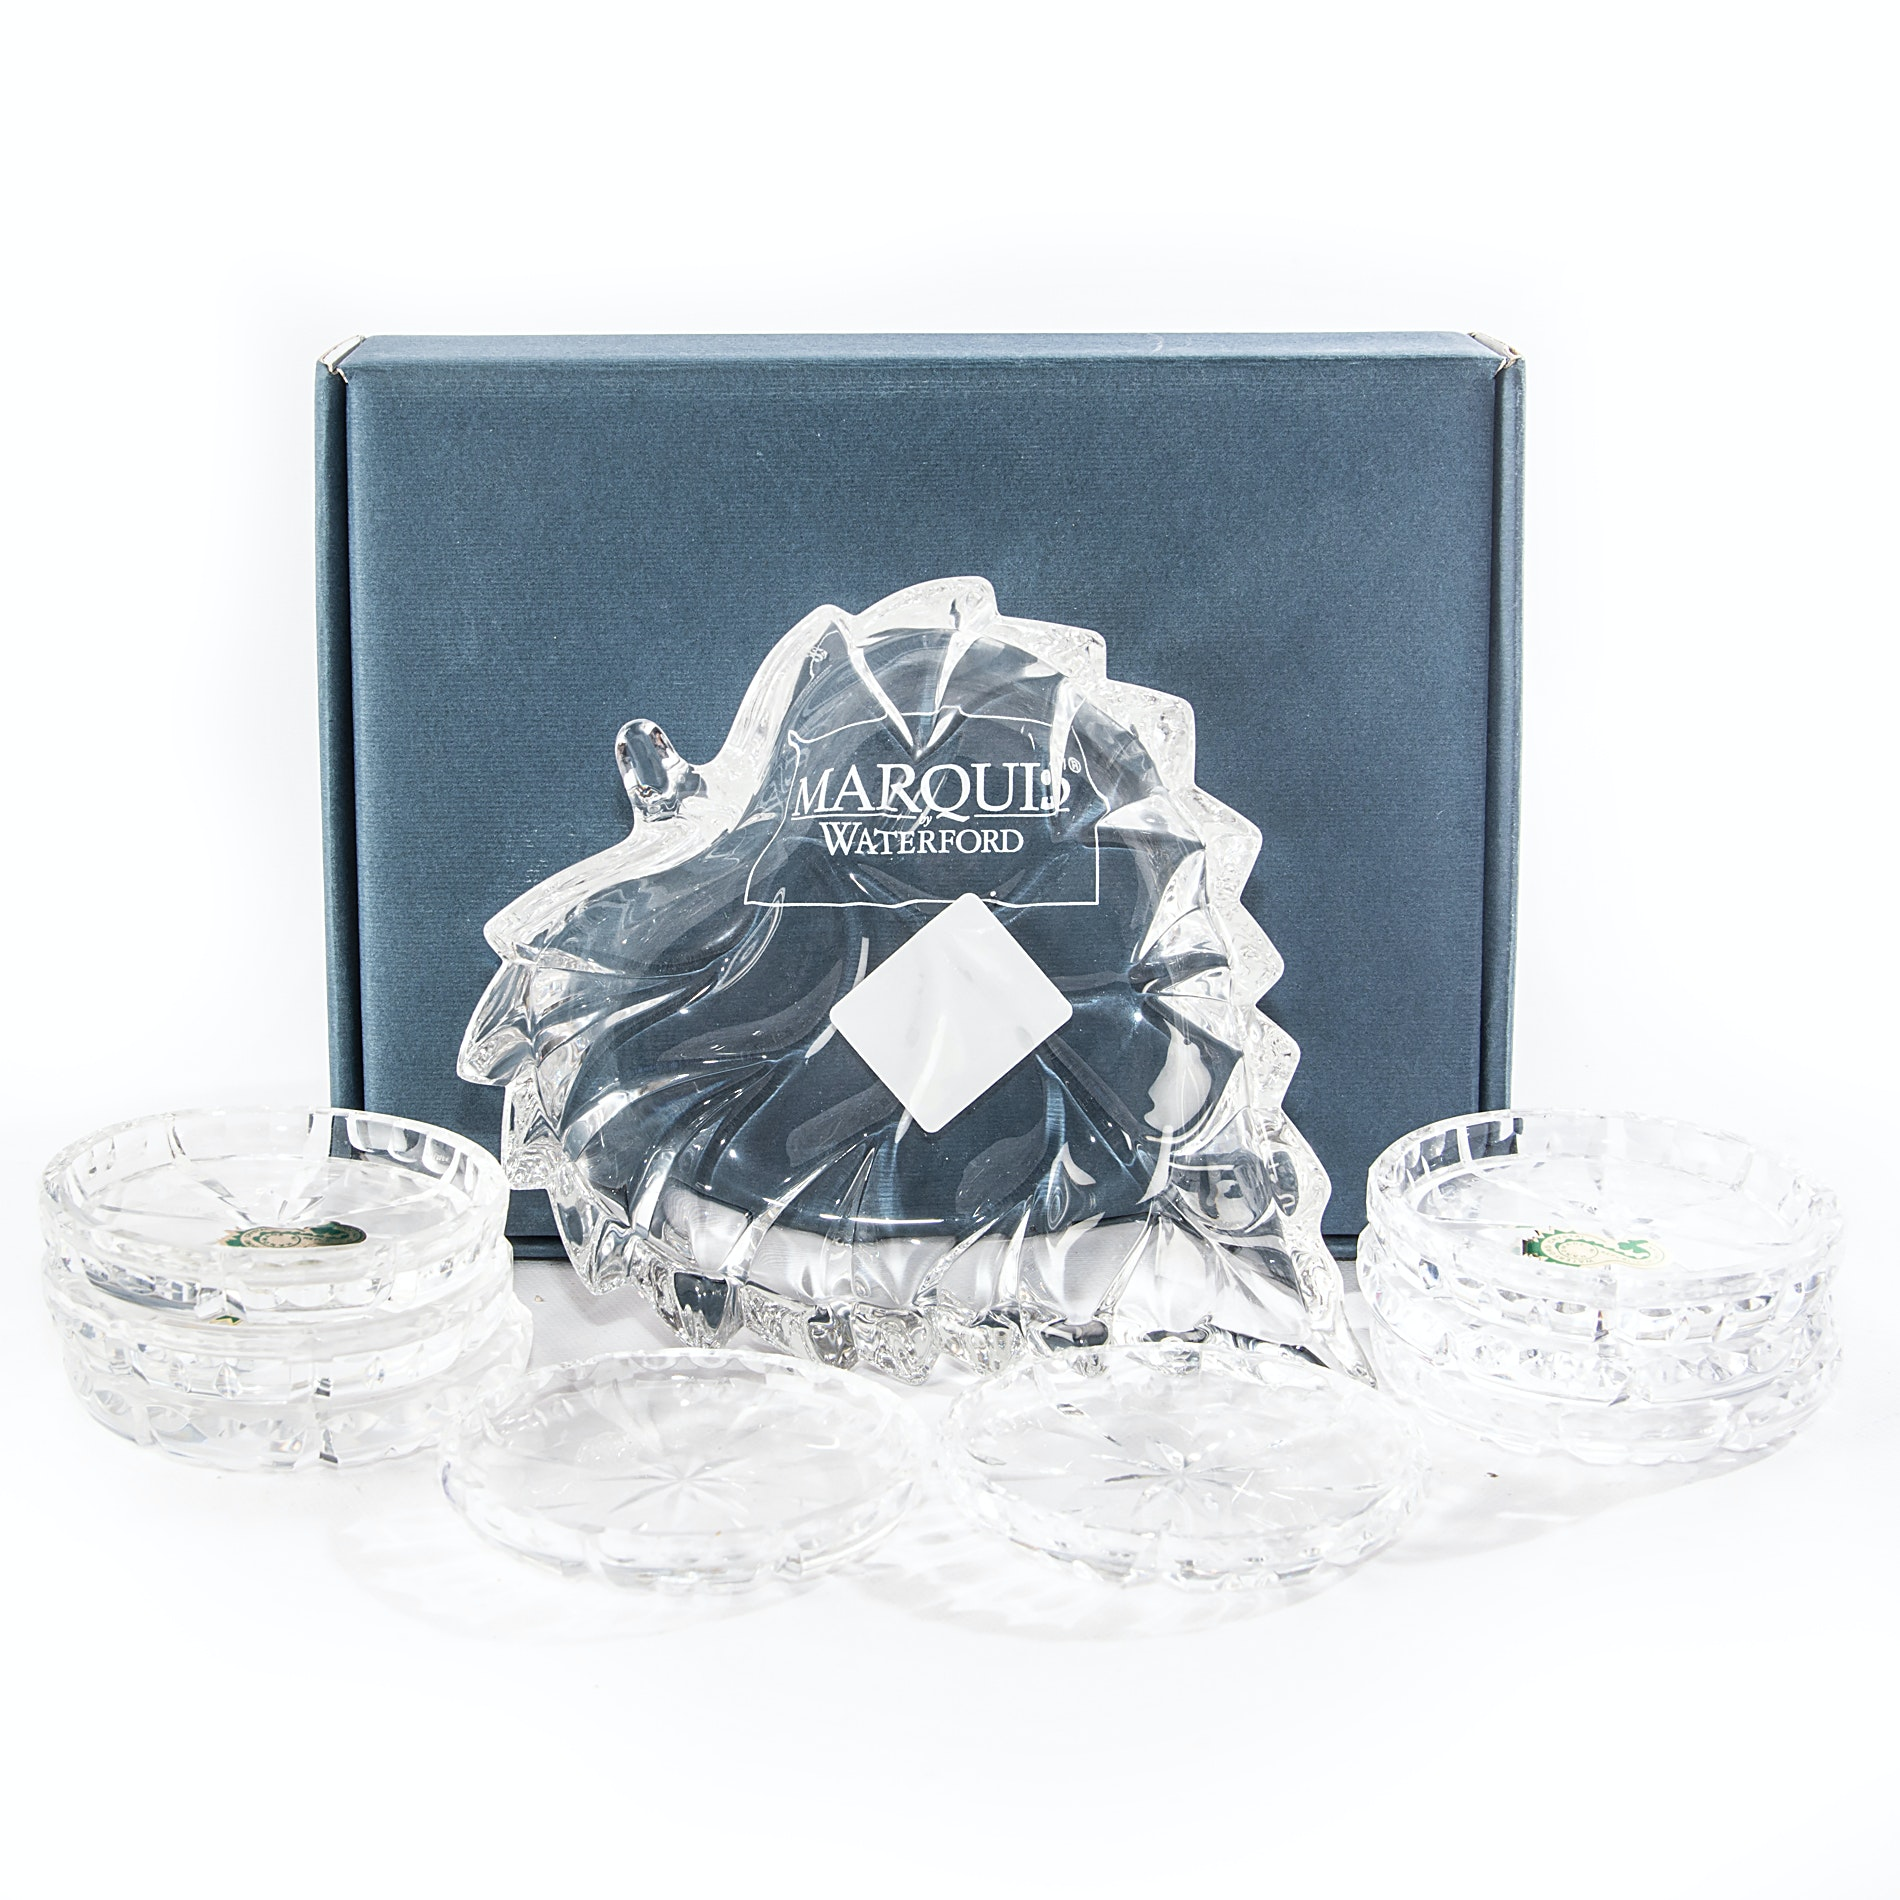 Handmade Waterford Crystal Coasters and Marquis by Waterford Dish